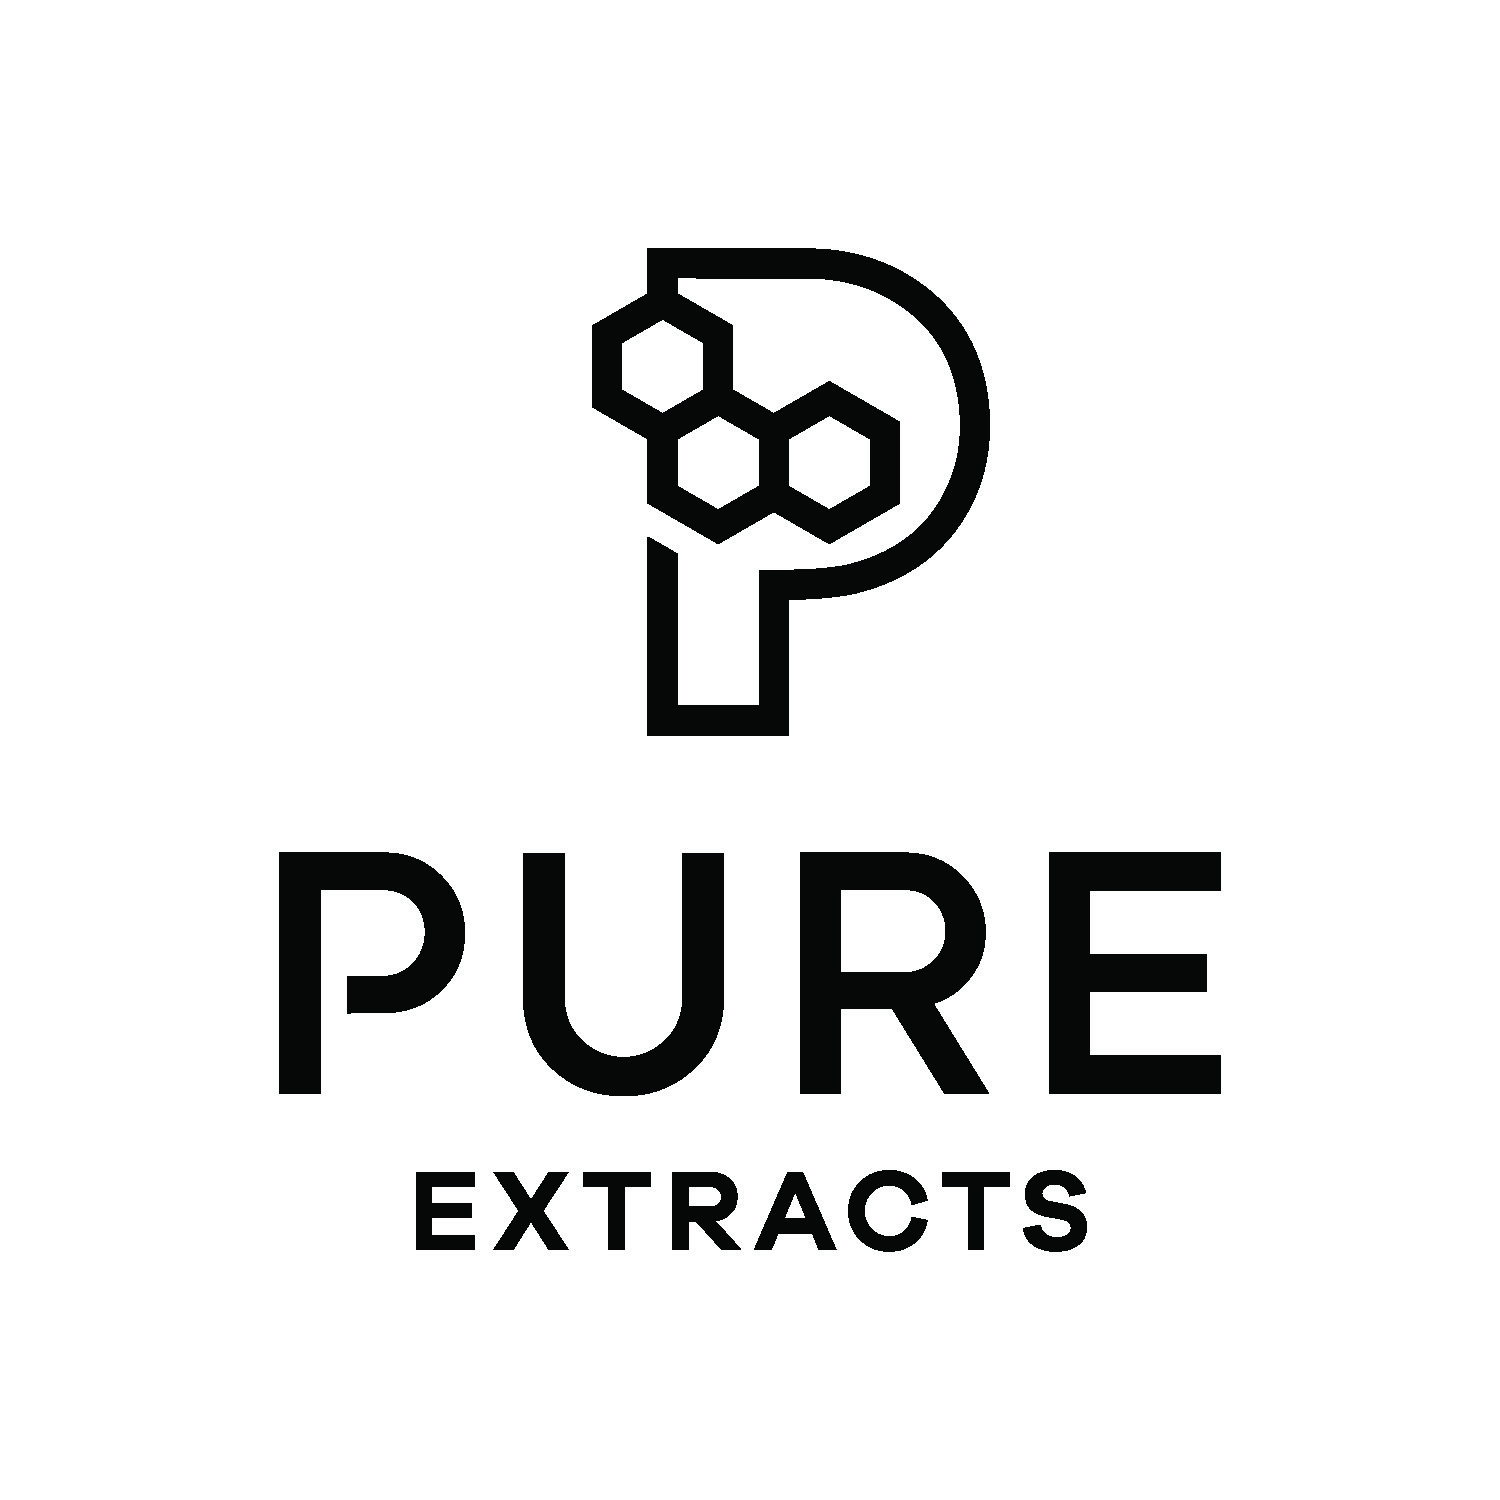 REPEAT - Pure Extracts Applauds Health Canada SAP for Psilocybin-Assisted Psychotherapy Inclusion